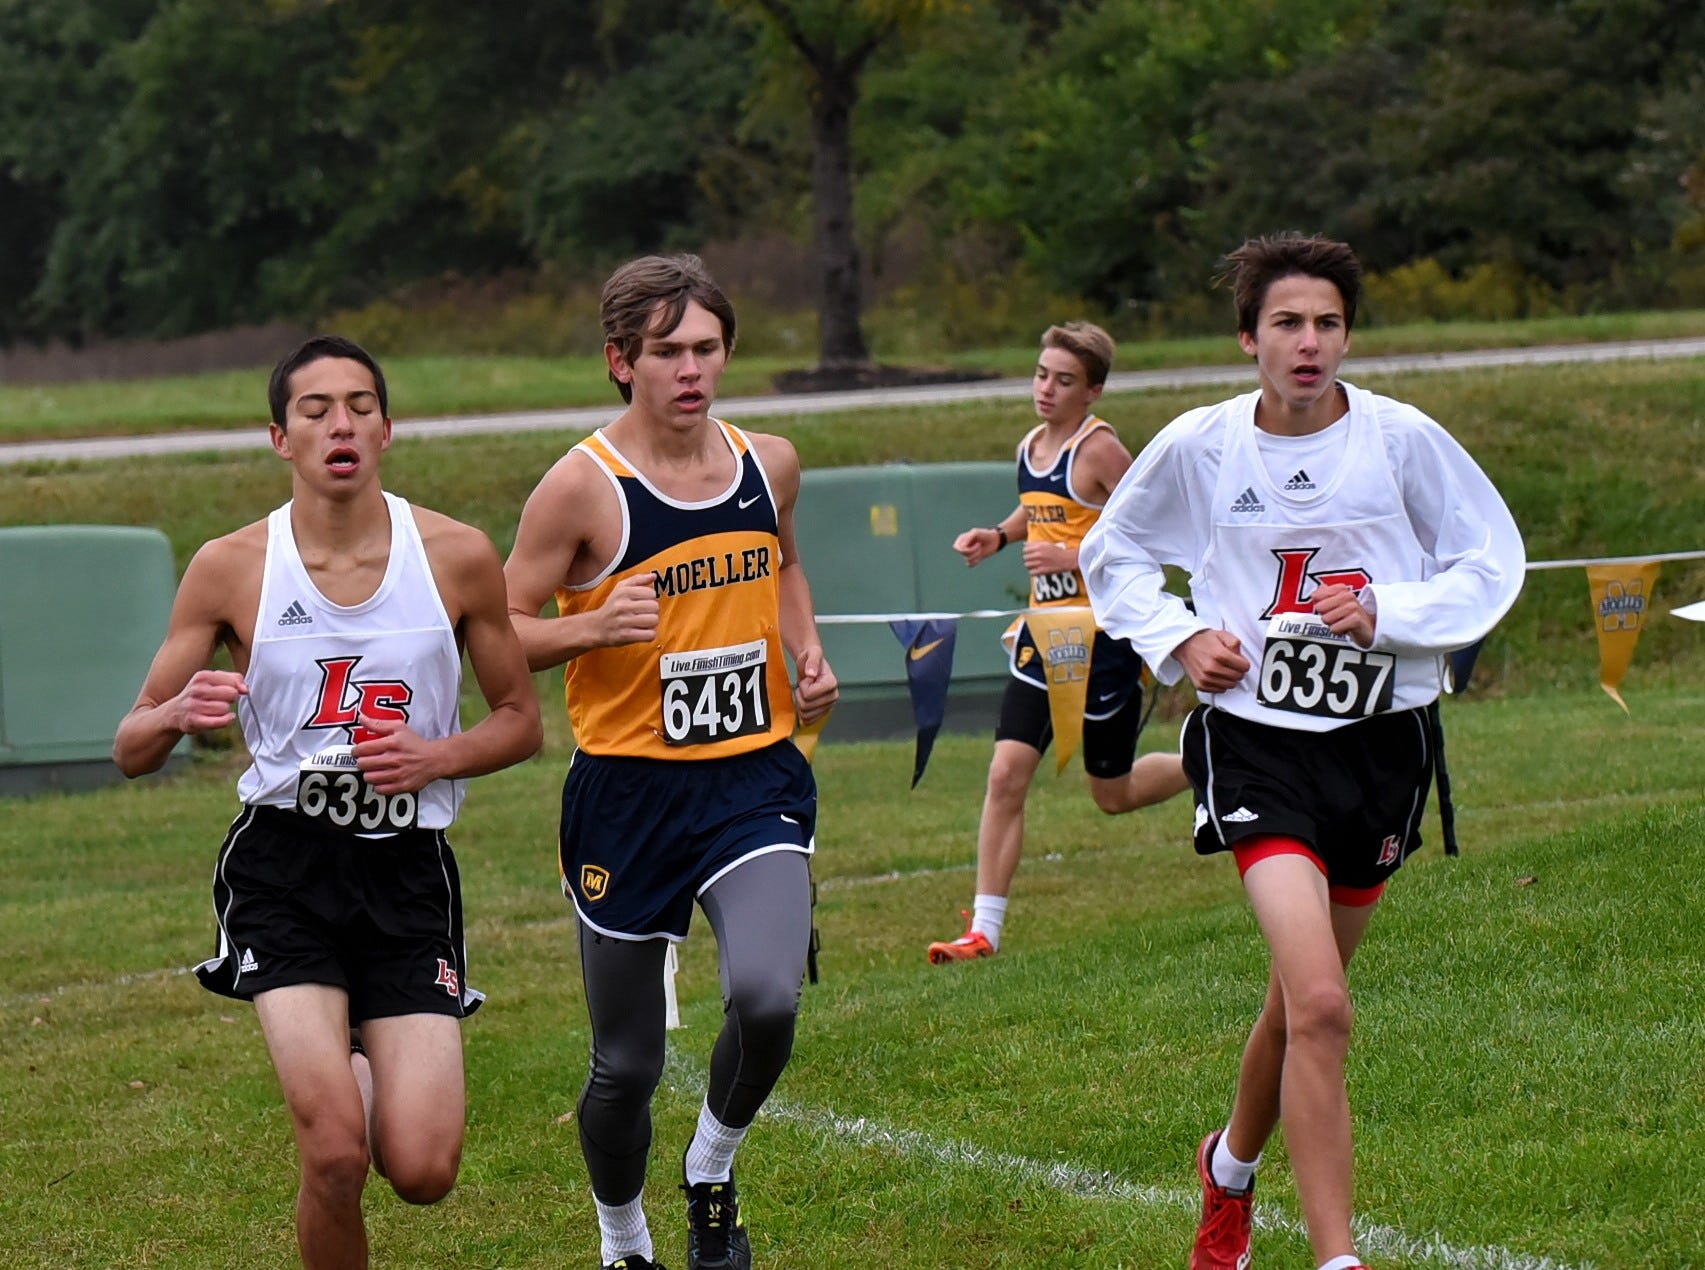 La Salle's Luke Lohman and Nicholas Lanter join Moeller's Nicholas Eiben heading out of a far turn at the 2018 GCL/GGCL Cross Country Championships, October 13, 2018.